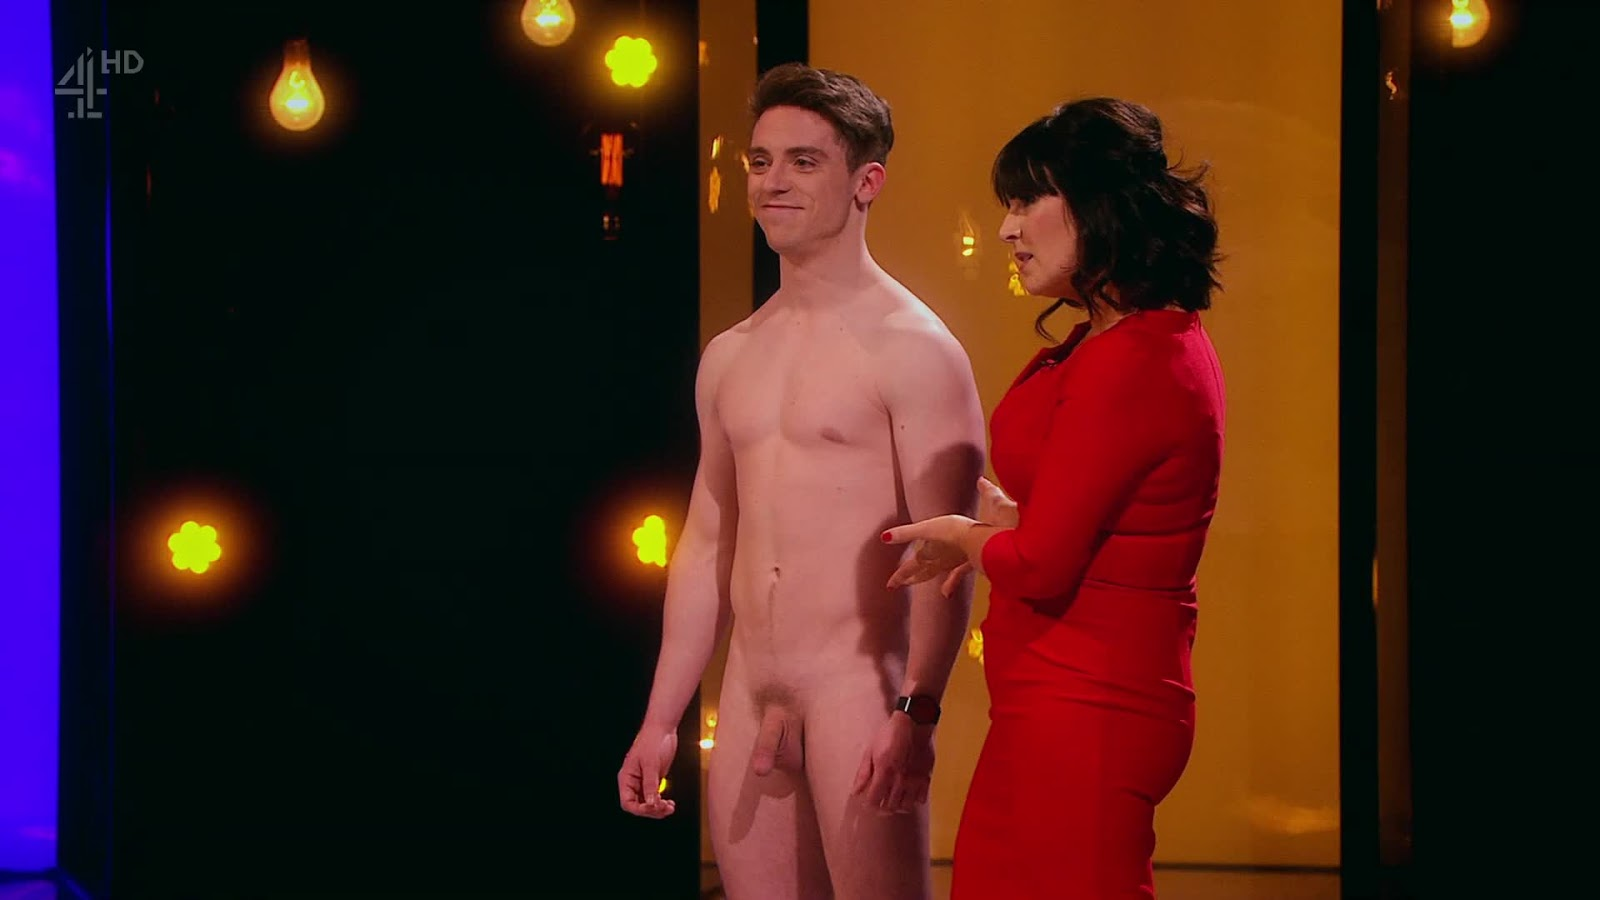 Full naked attraction Naked Attraction